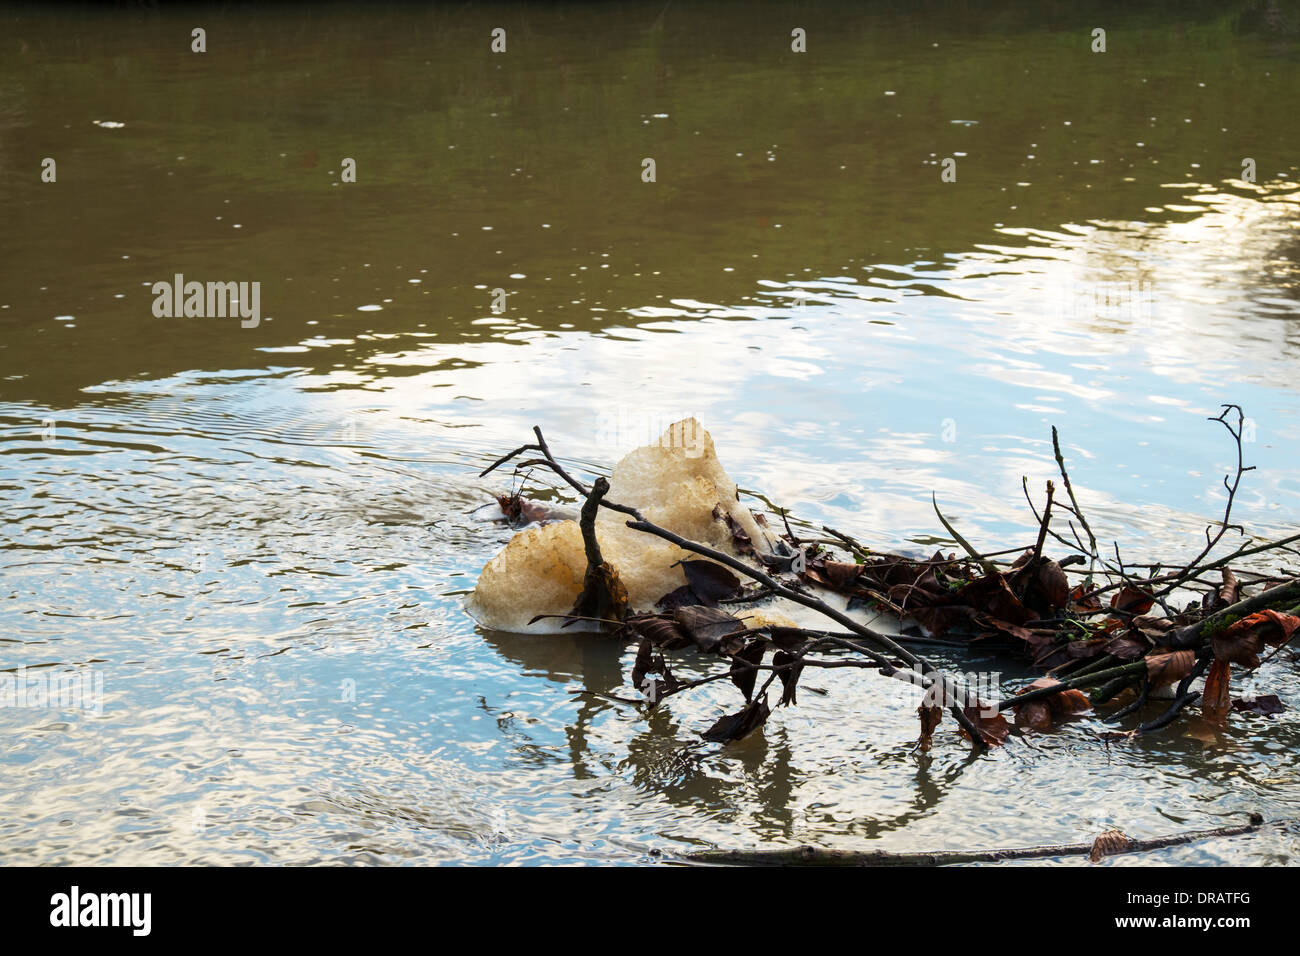 pollution scum floating on river Lud Hubbards Hills, Louth, Lincolnshire, UK, GB, England - Stock Image